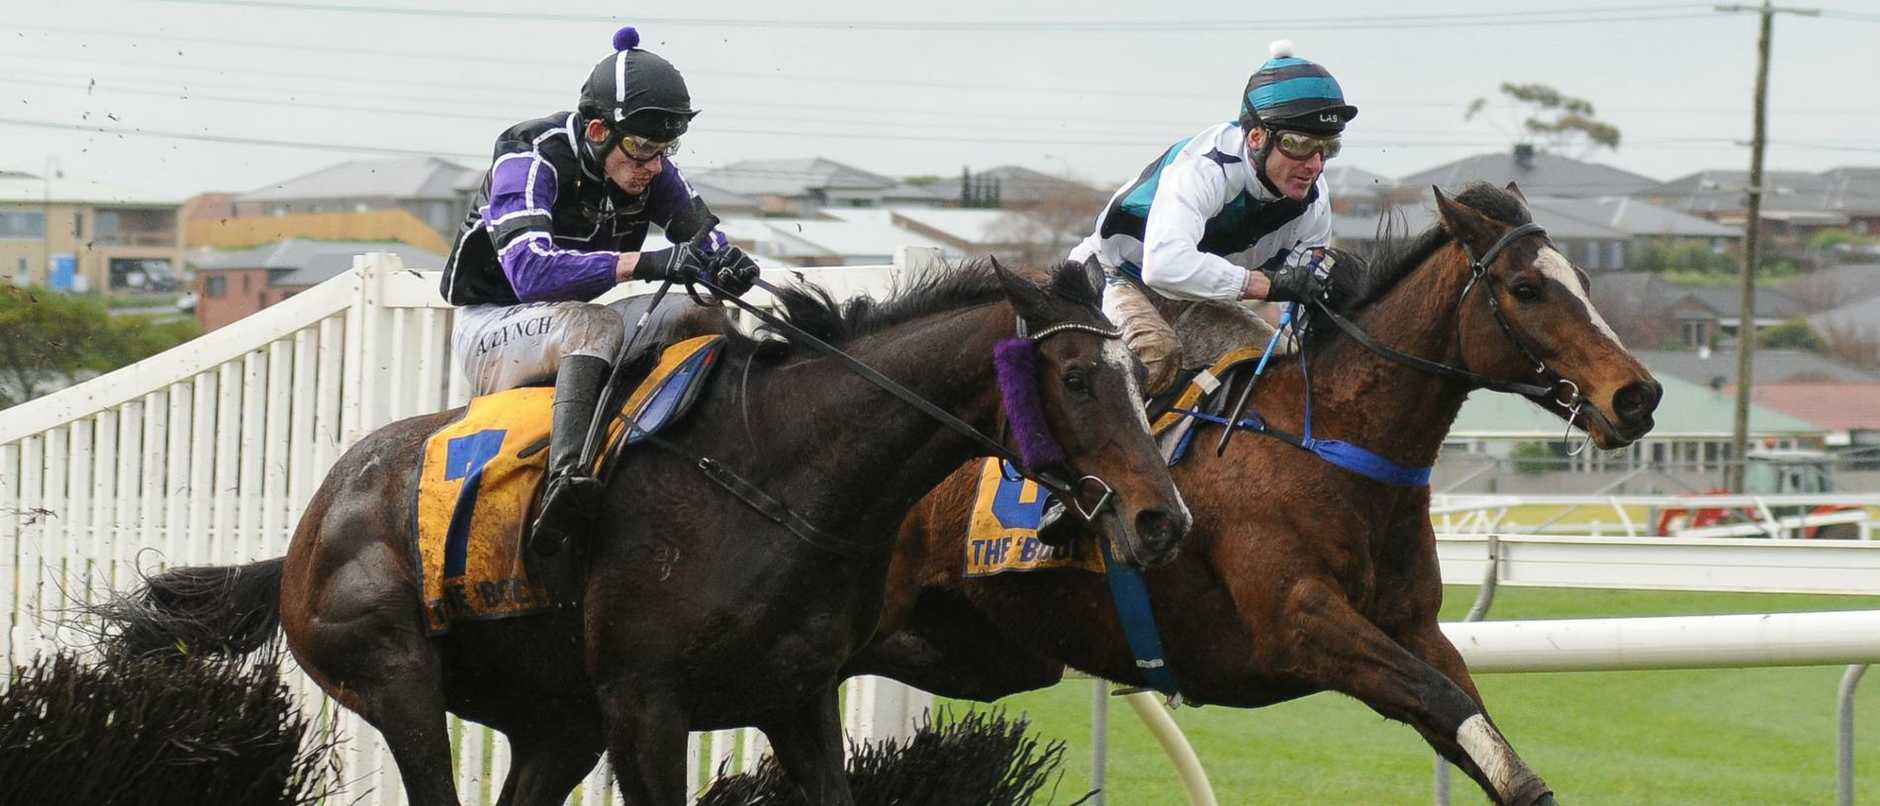 Jockey Paul Hamblin (right) clears the final hurdle on Hornets' Nest in the Lafferty Hurdle at Warrnambool in 2017. Picture: Getty Images